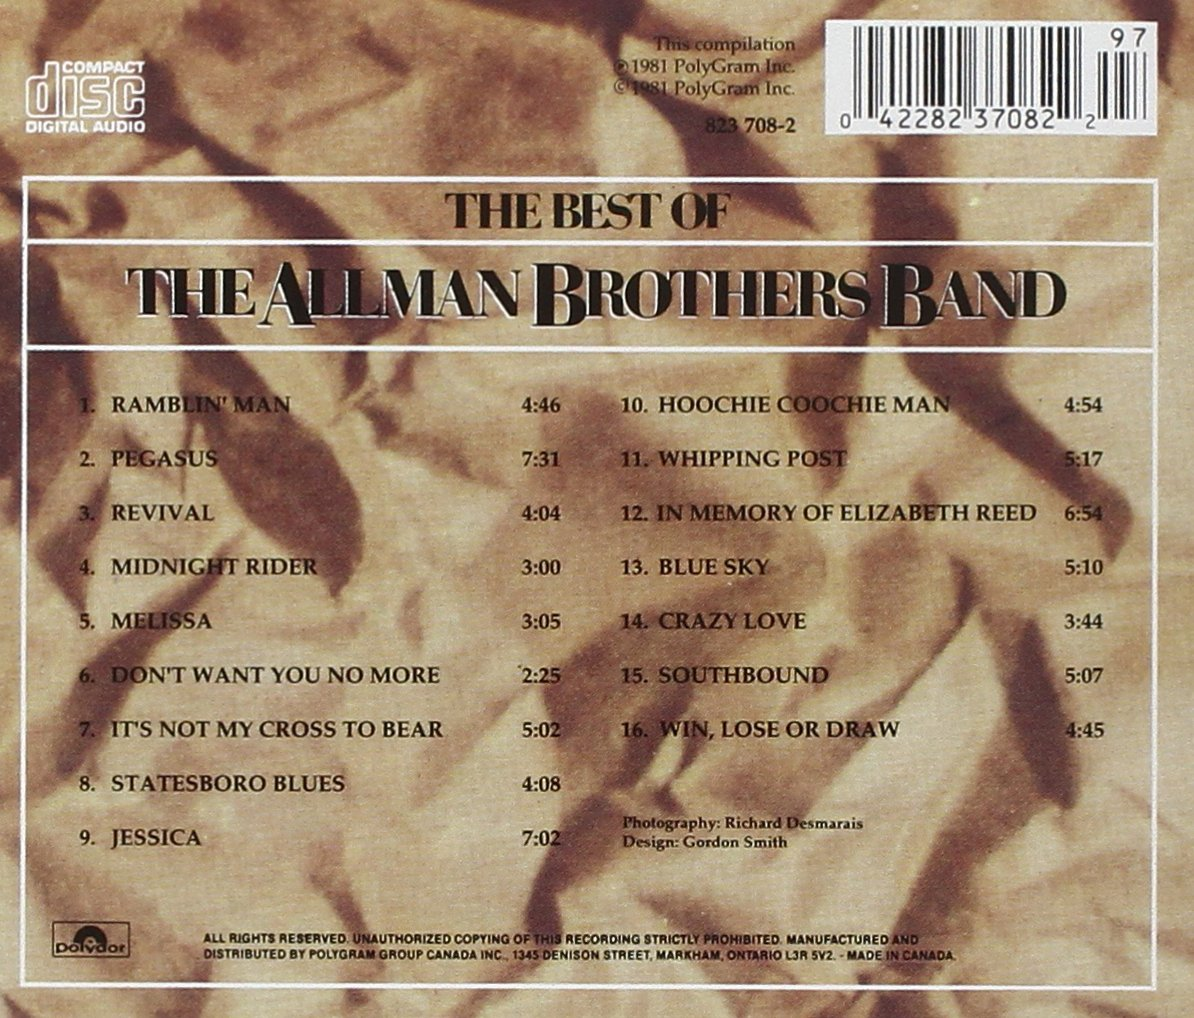 The Best of The Allman Brothers Band by Polydor